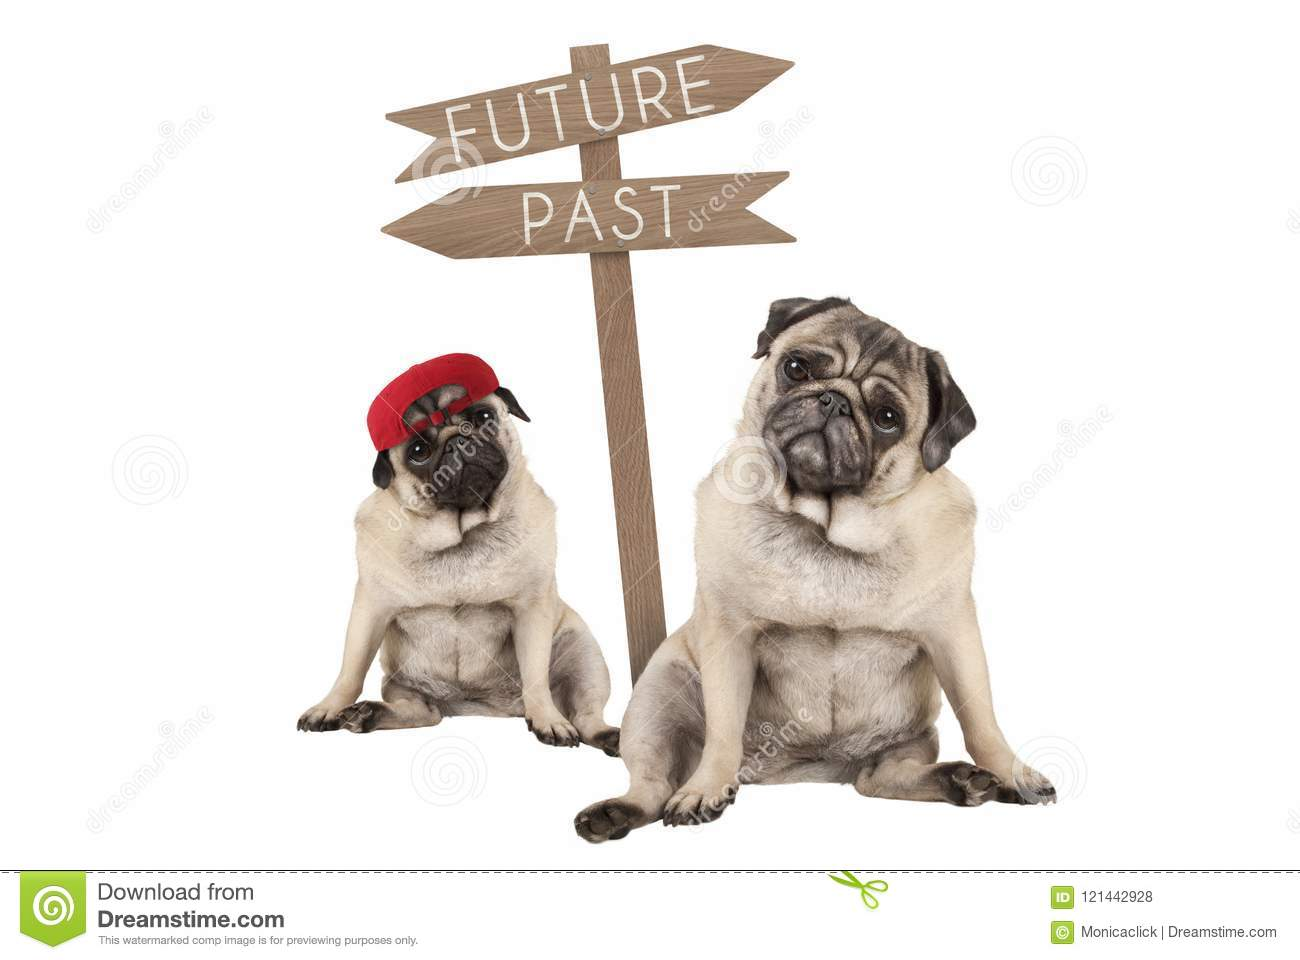 Pug puppy dog and aged animal sitting next to signpost with text past and future